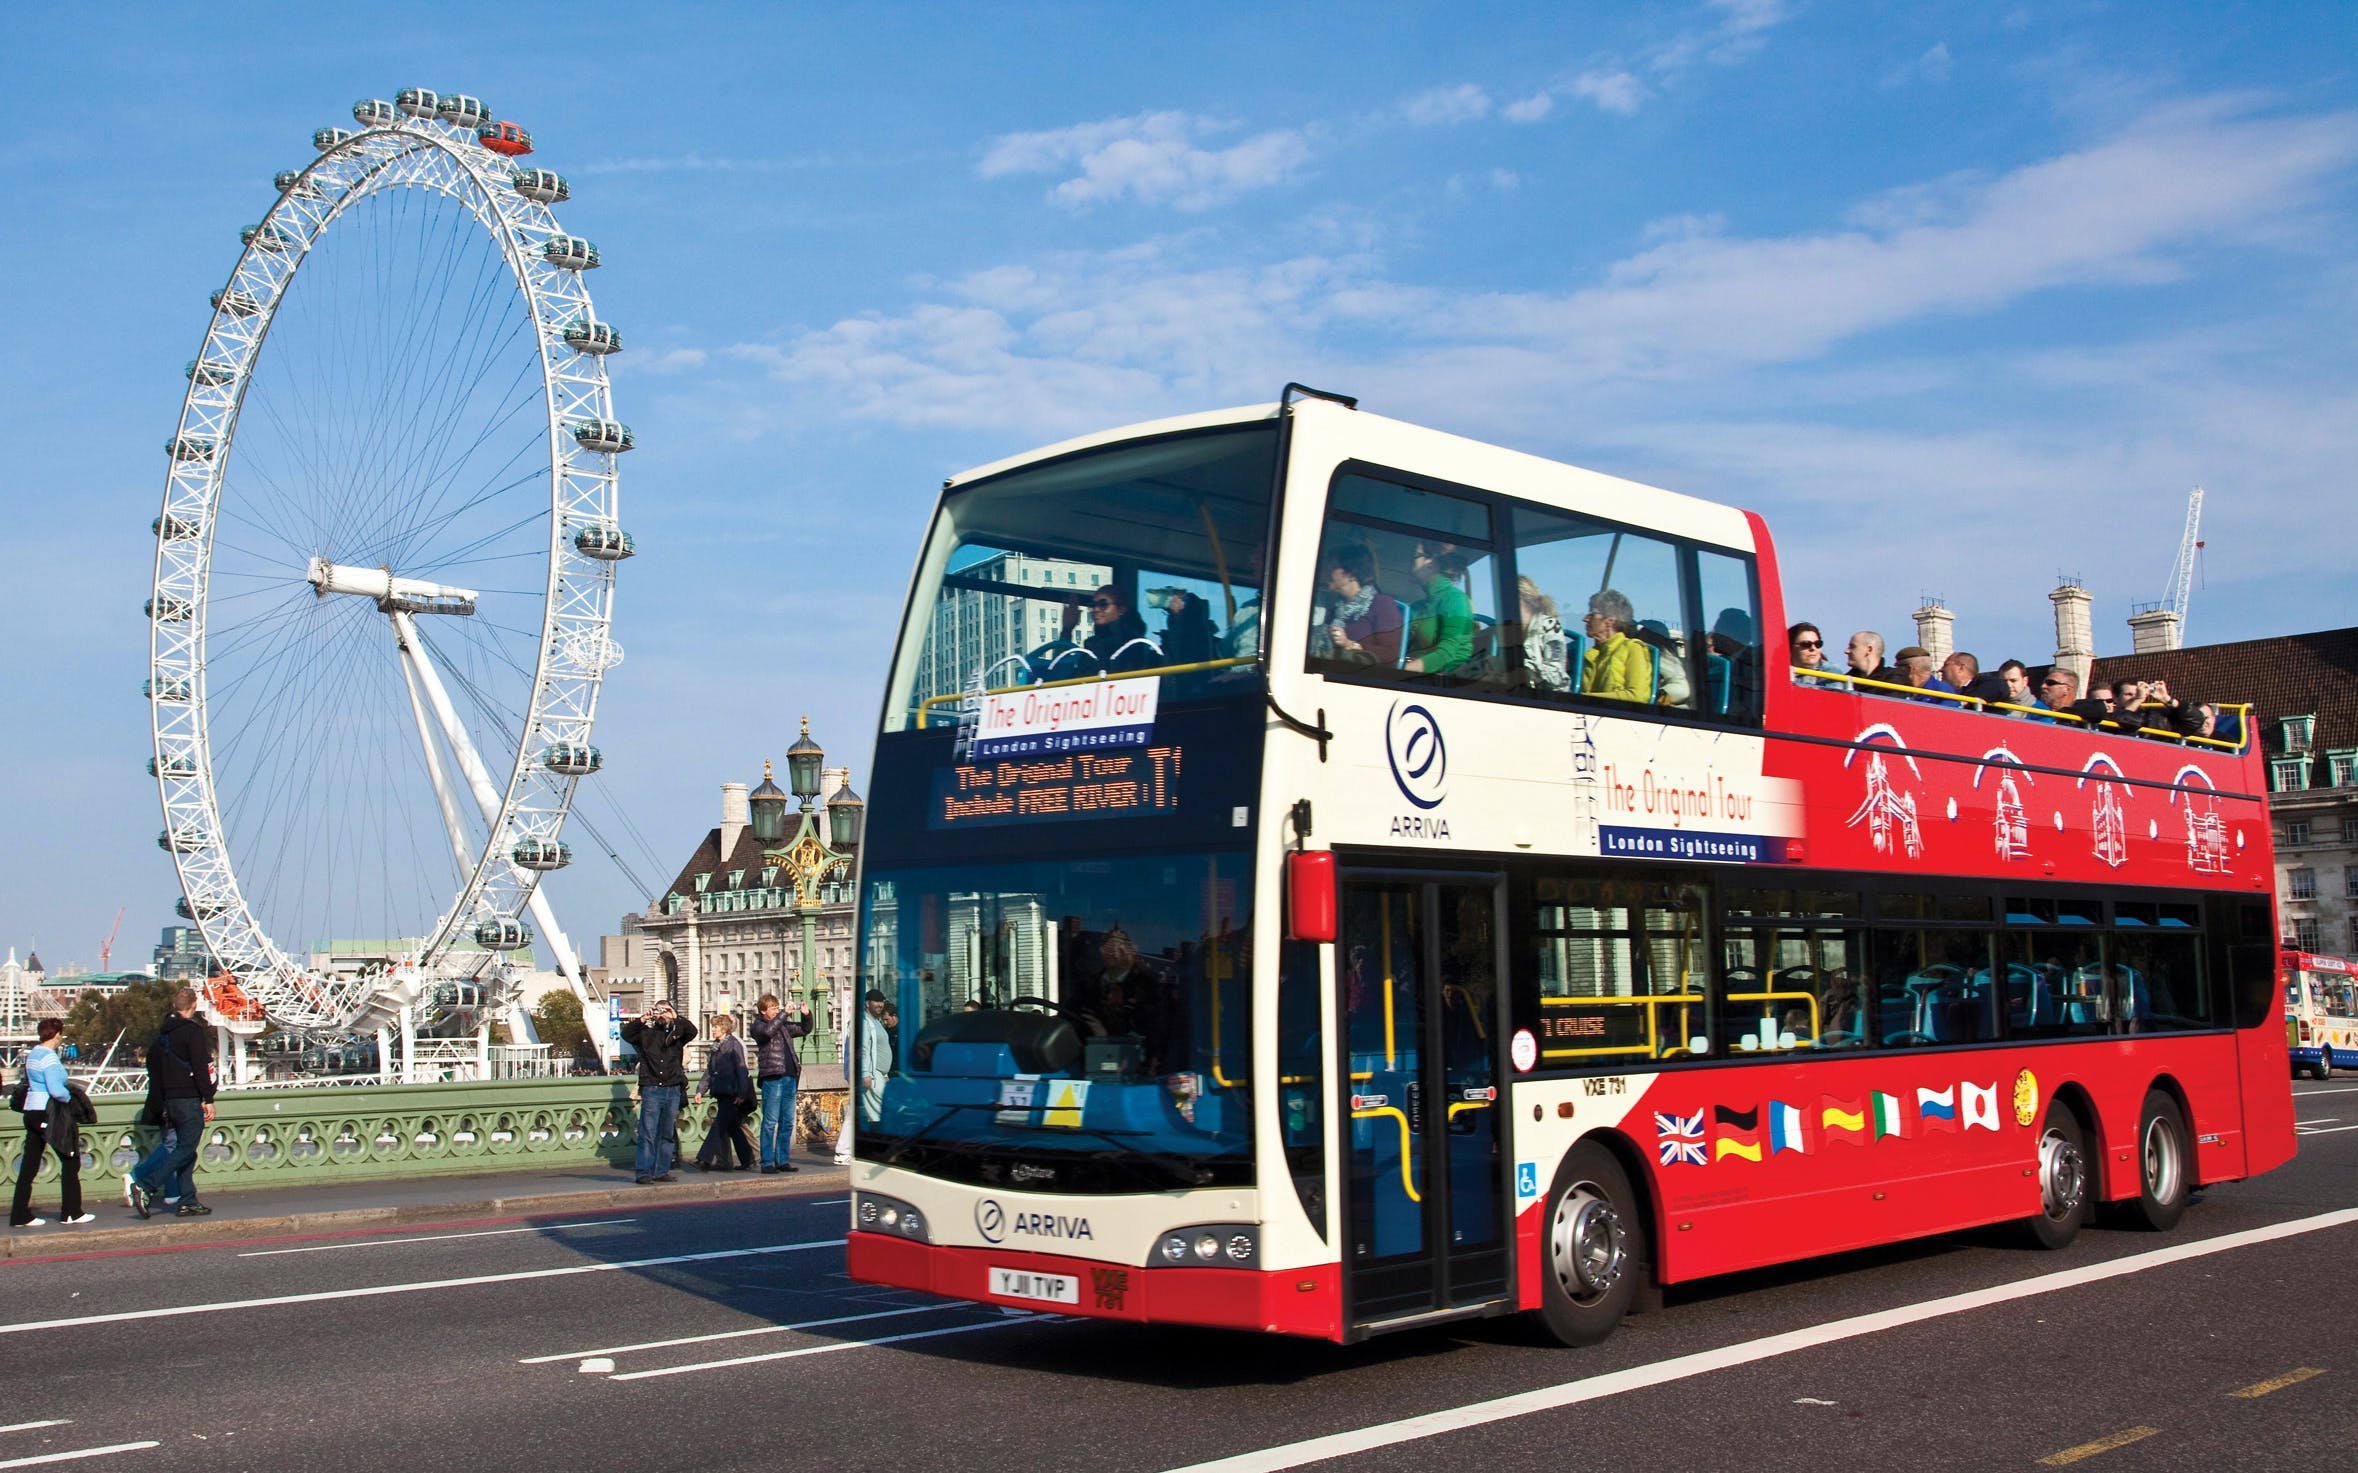 The Original London Hop-On Hop-Off Sightseeing Tour